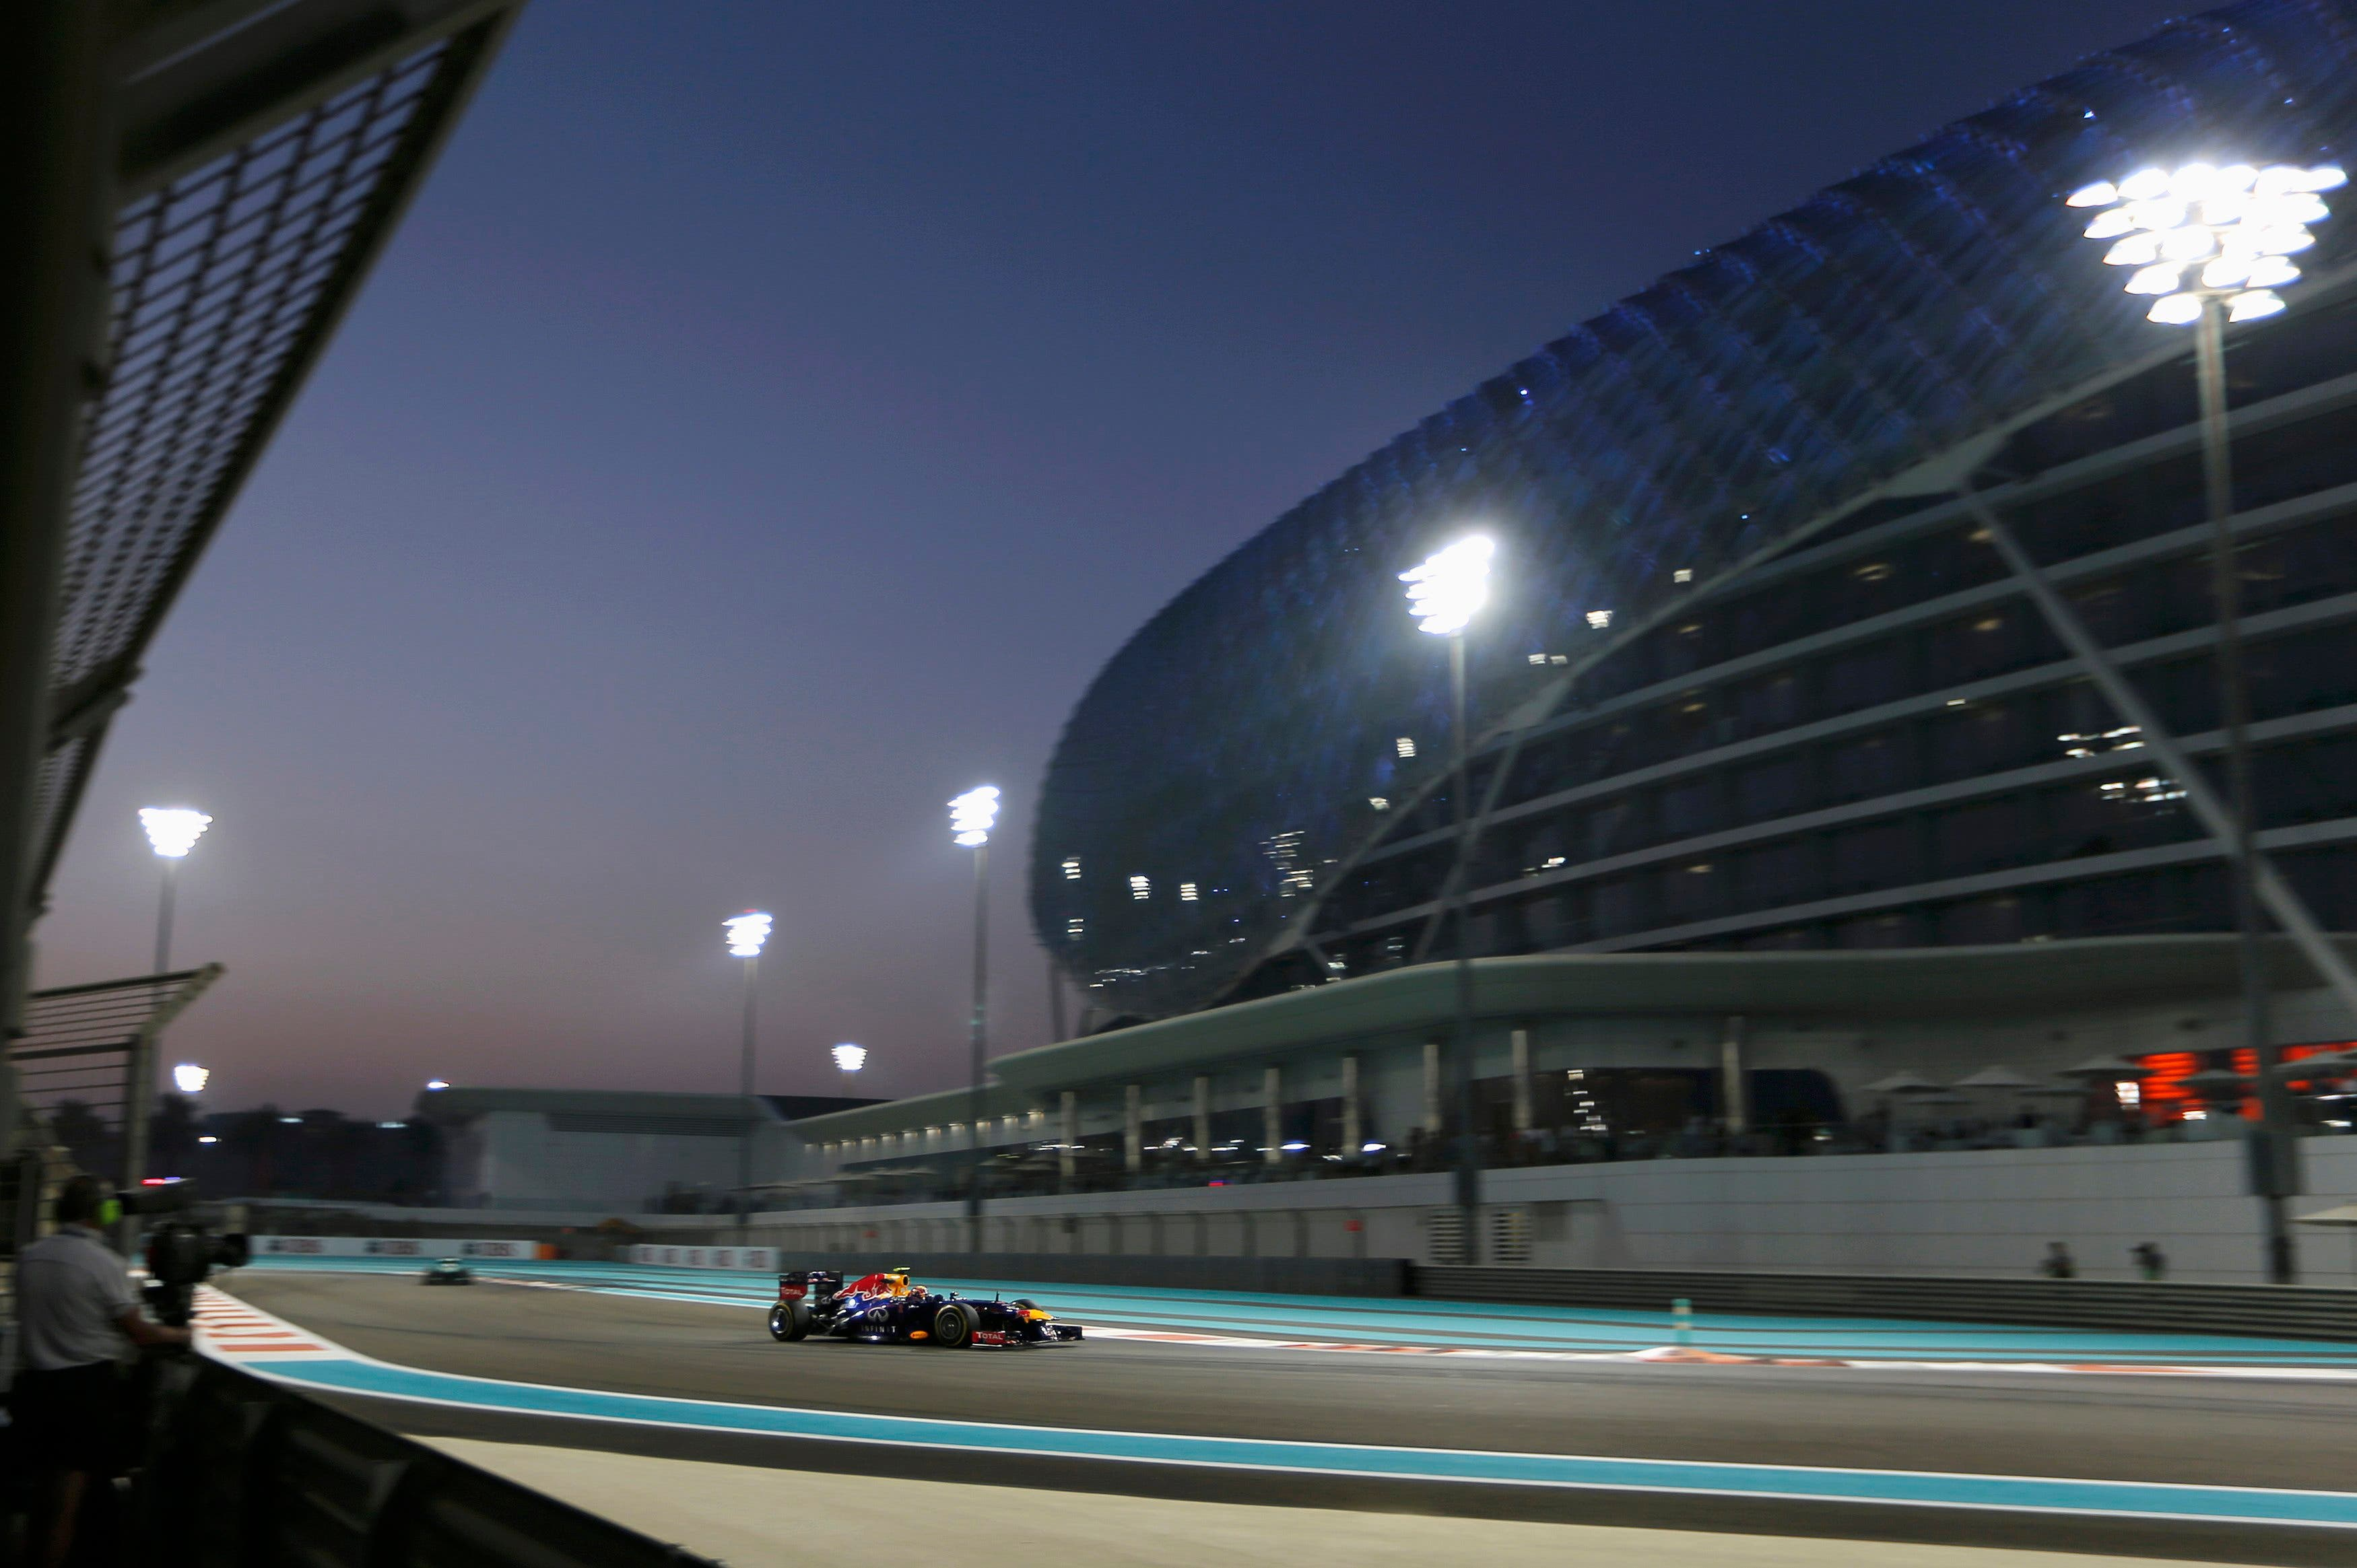 F1 practice sessions in Abu Dhabi